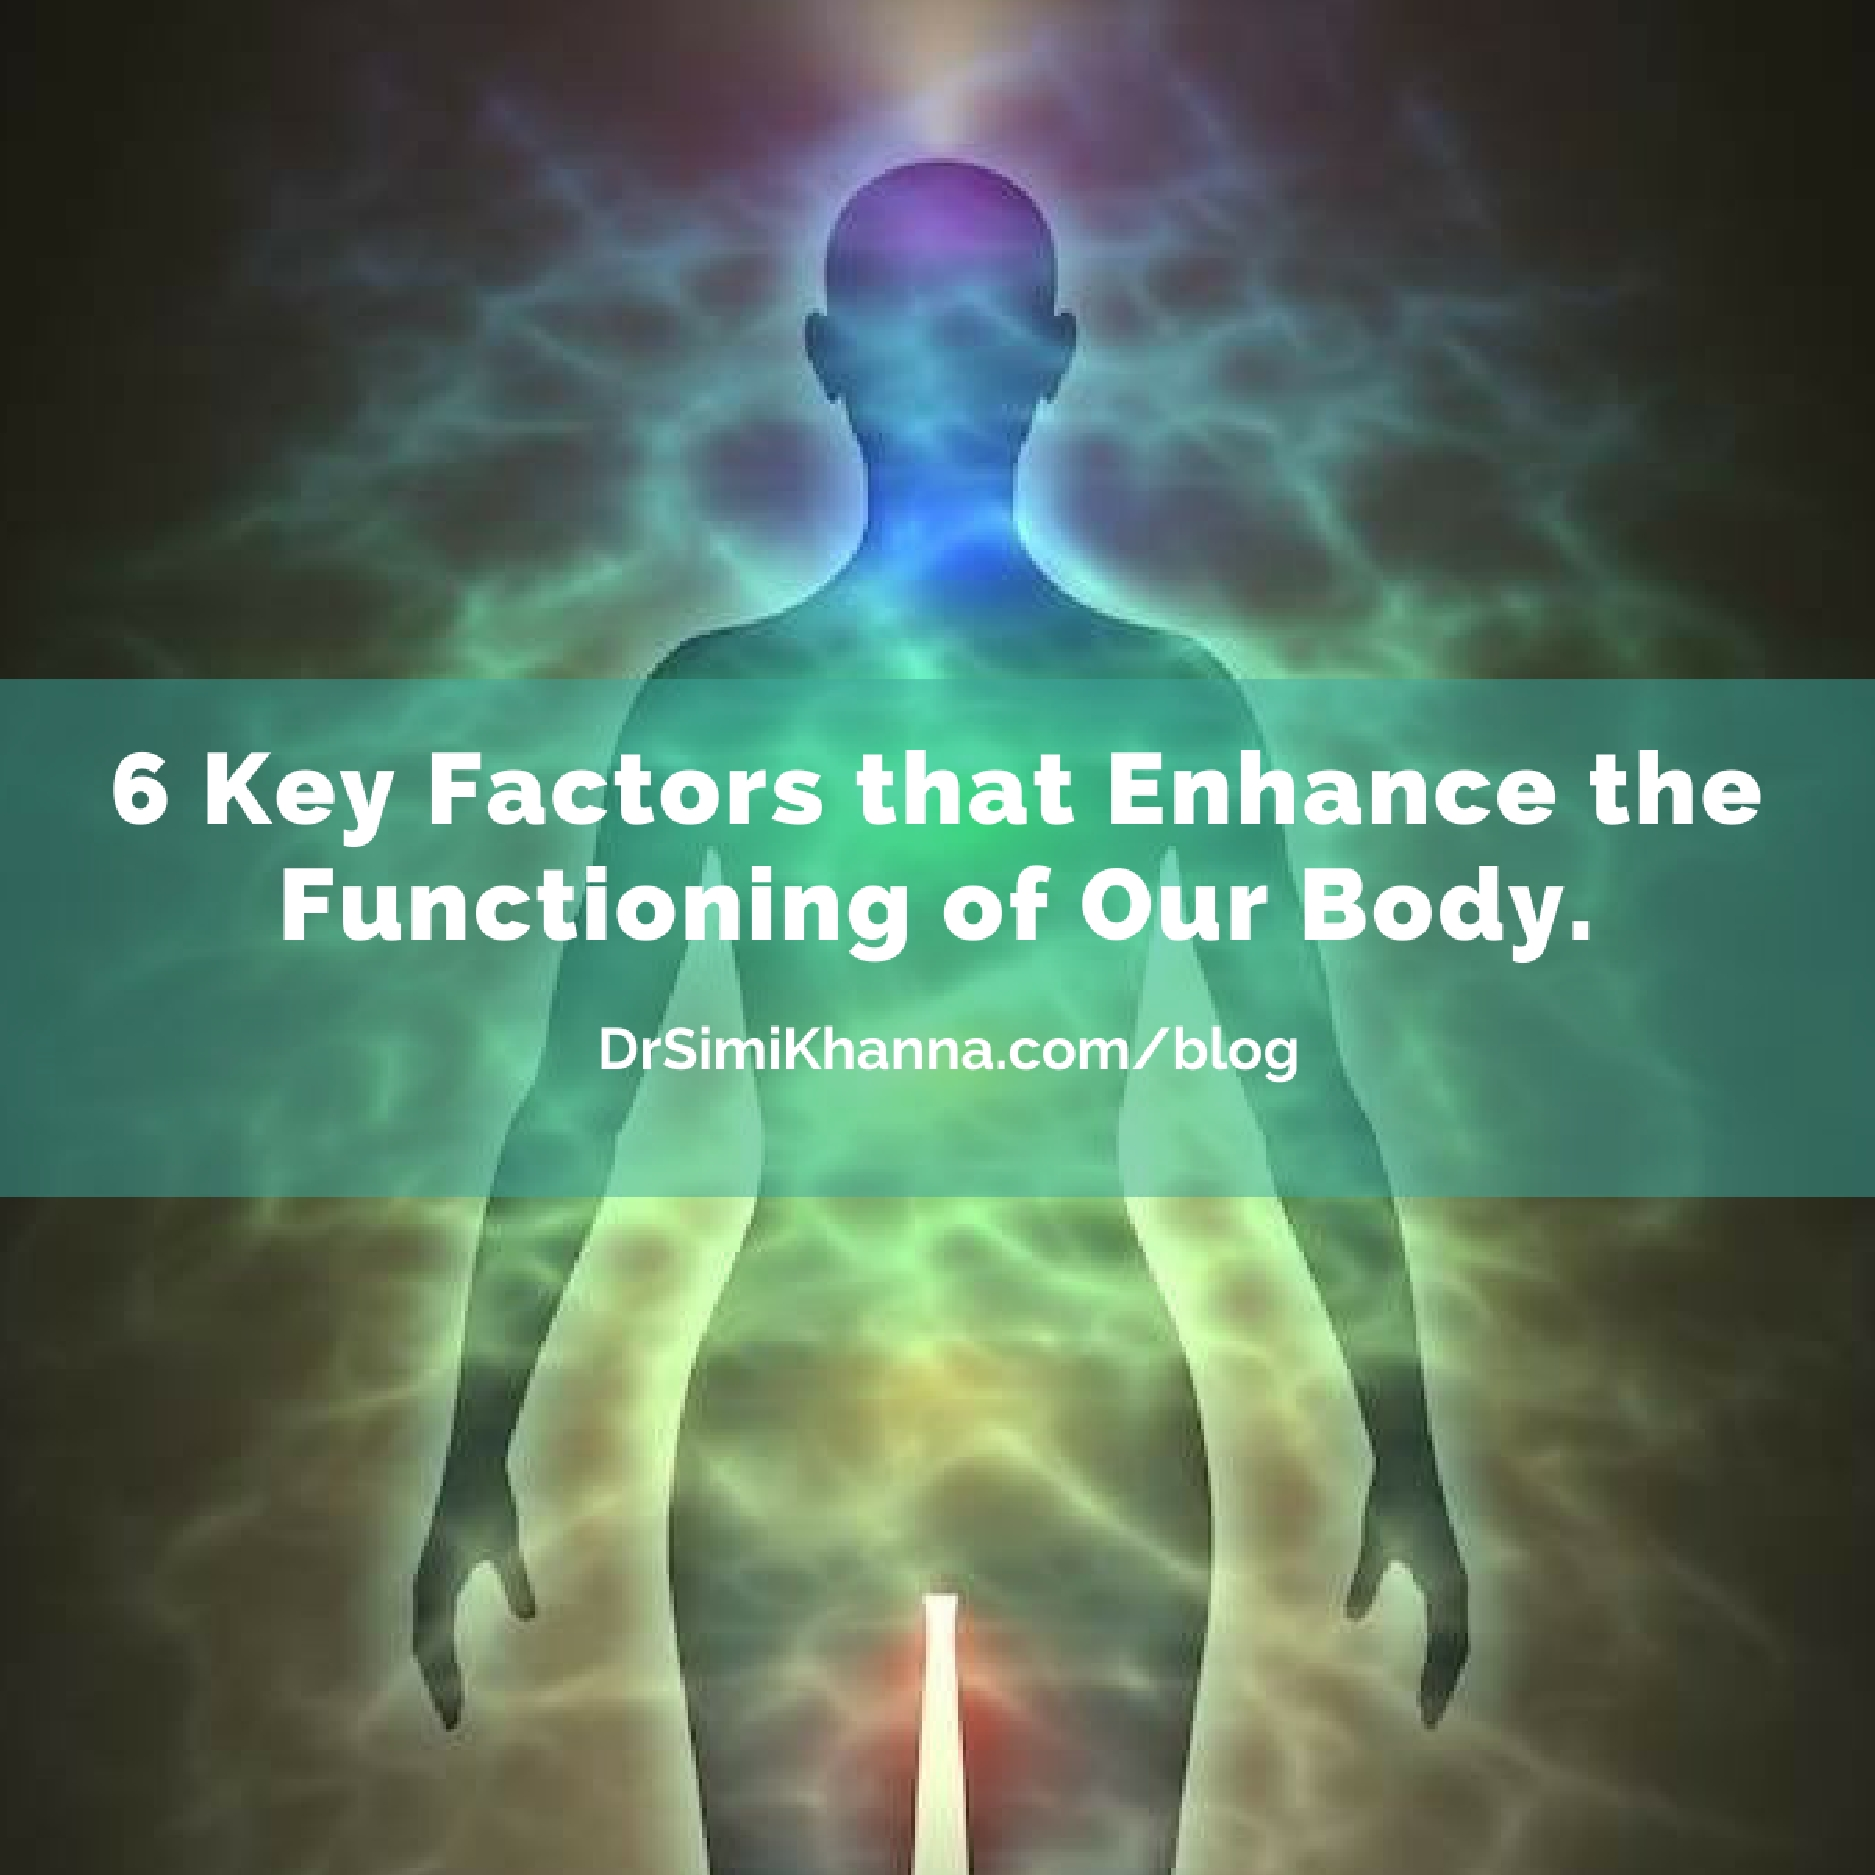 6 Key Factors that Enhance the Functioning of Our Body.